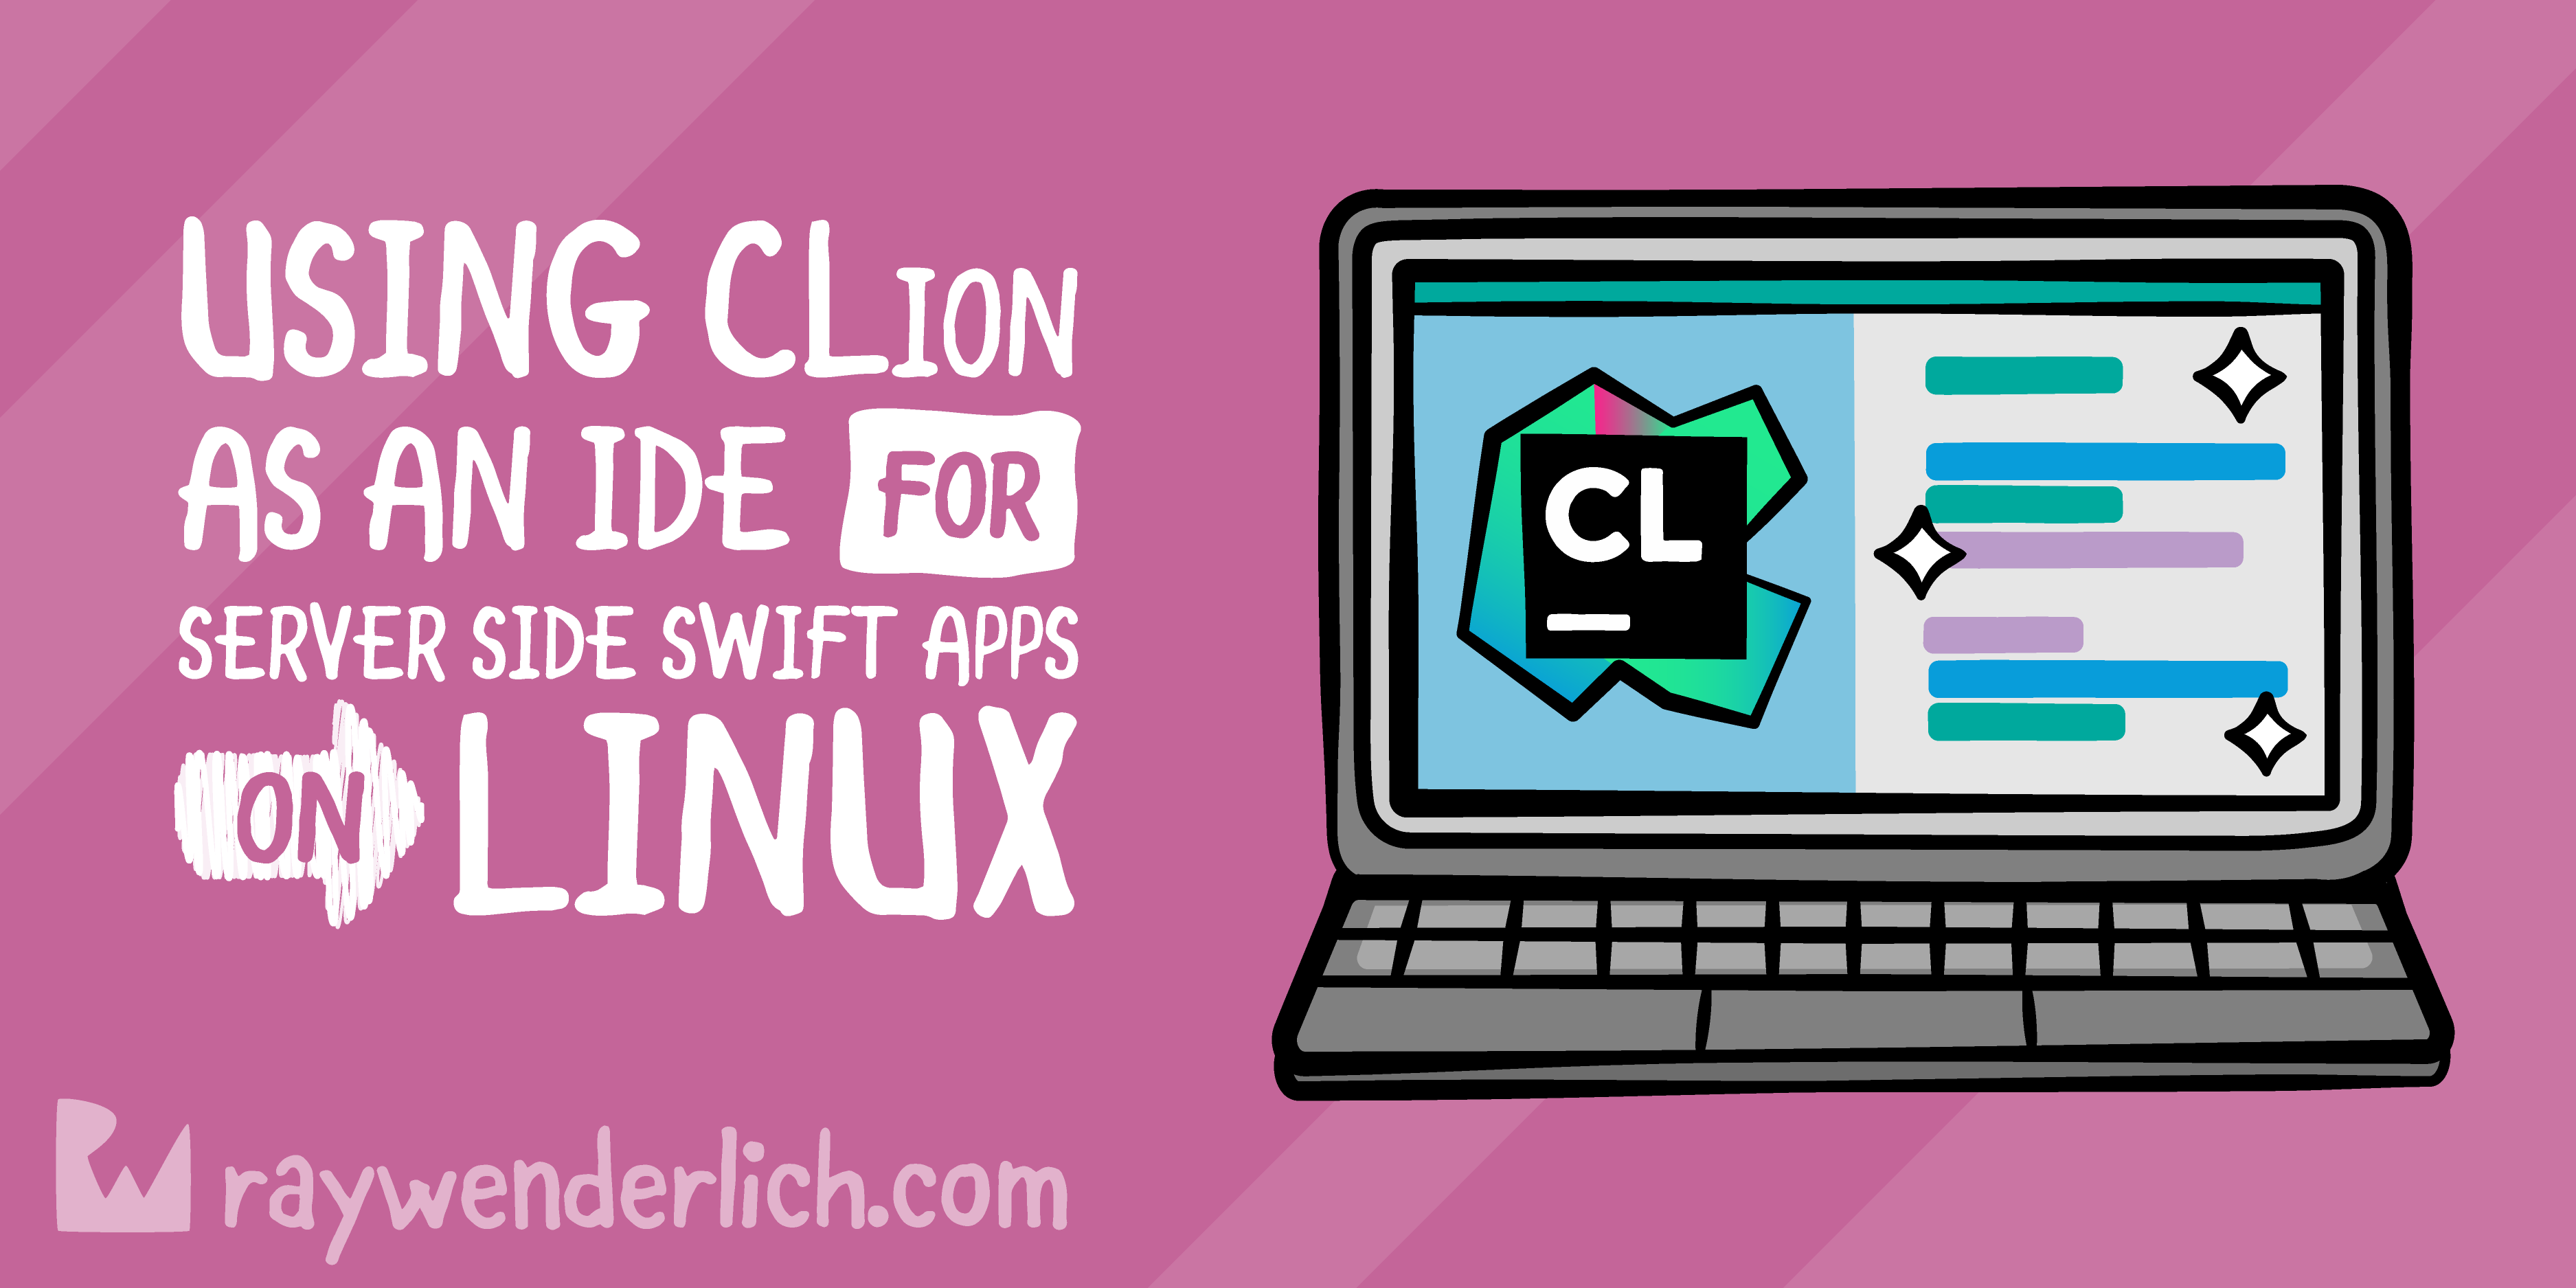 Using CLion as an IDE for Server Side Swift Apps on Linux